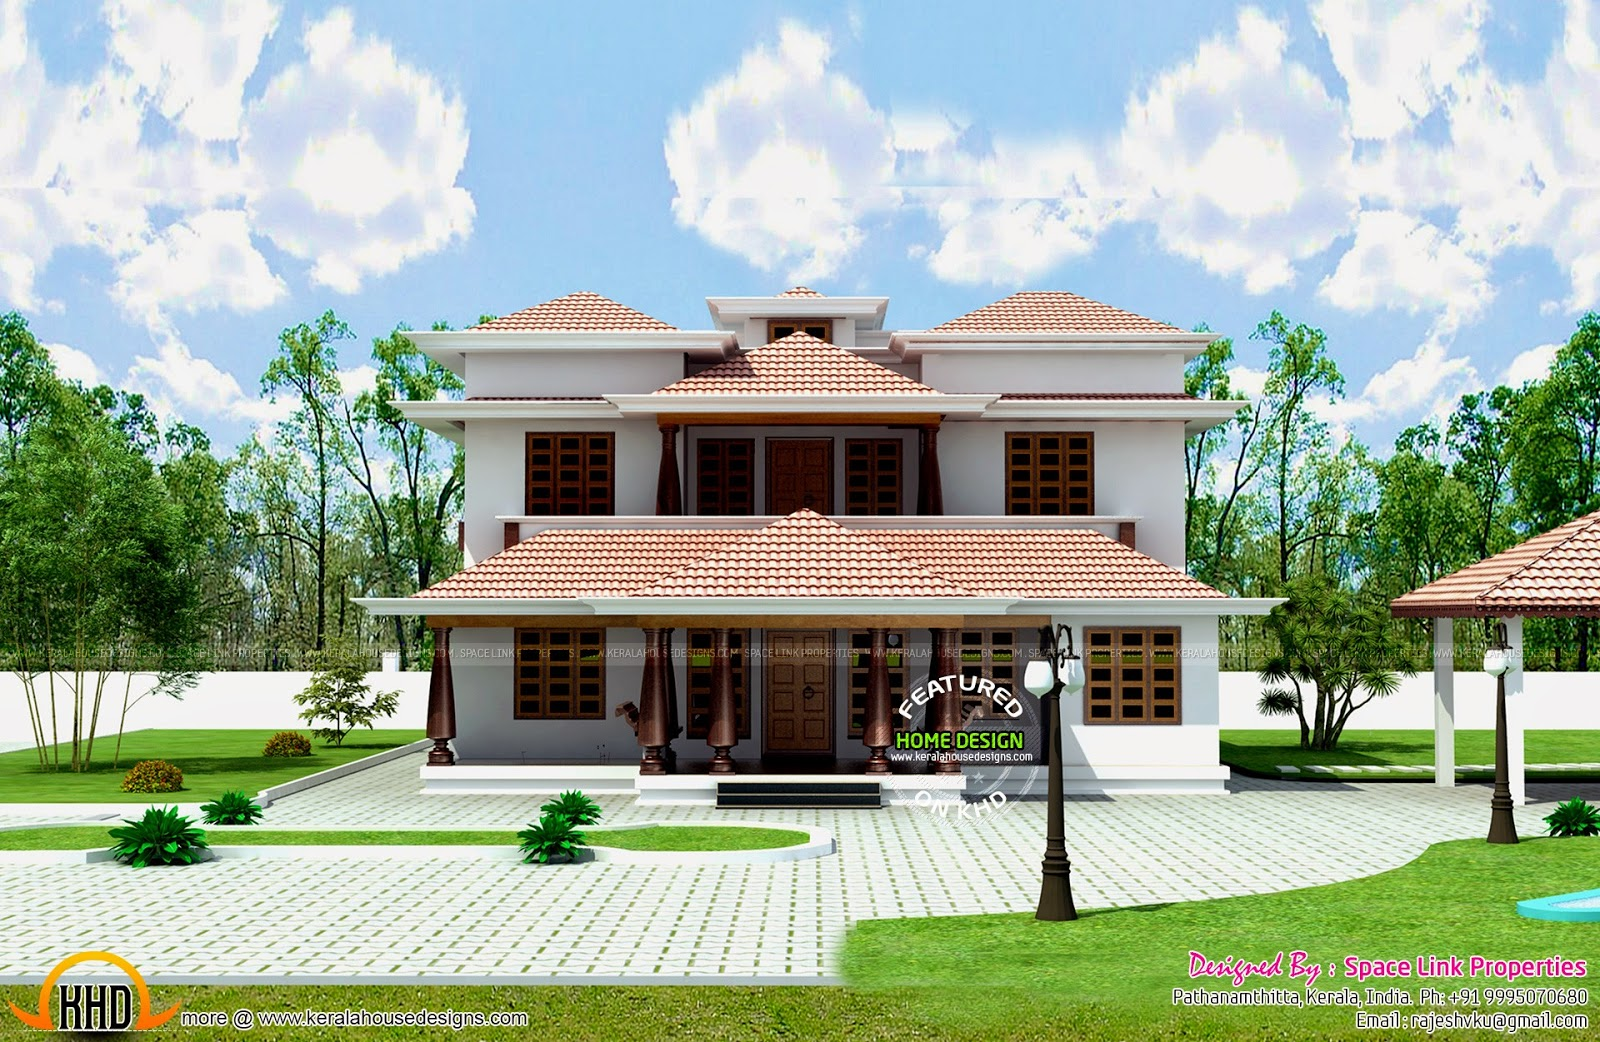 Typical kerala traditional house kerala home design and for Two floor house plans in kerala